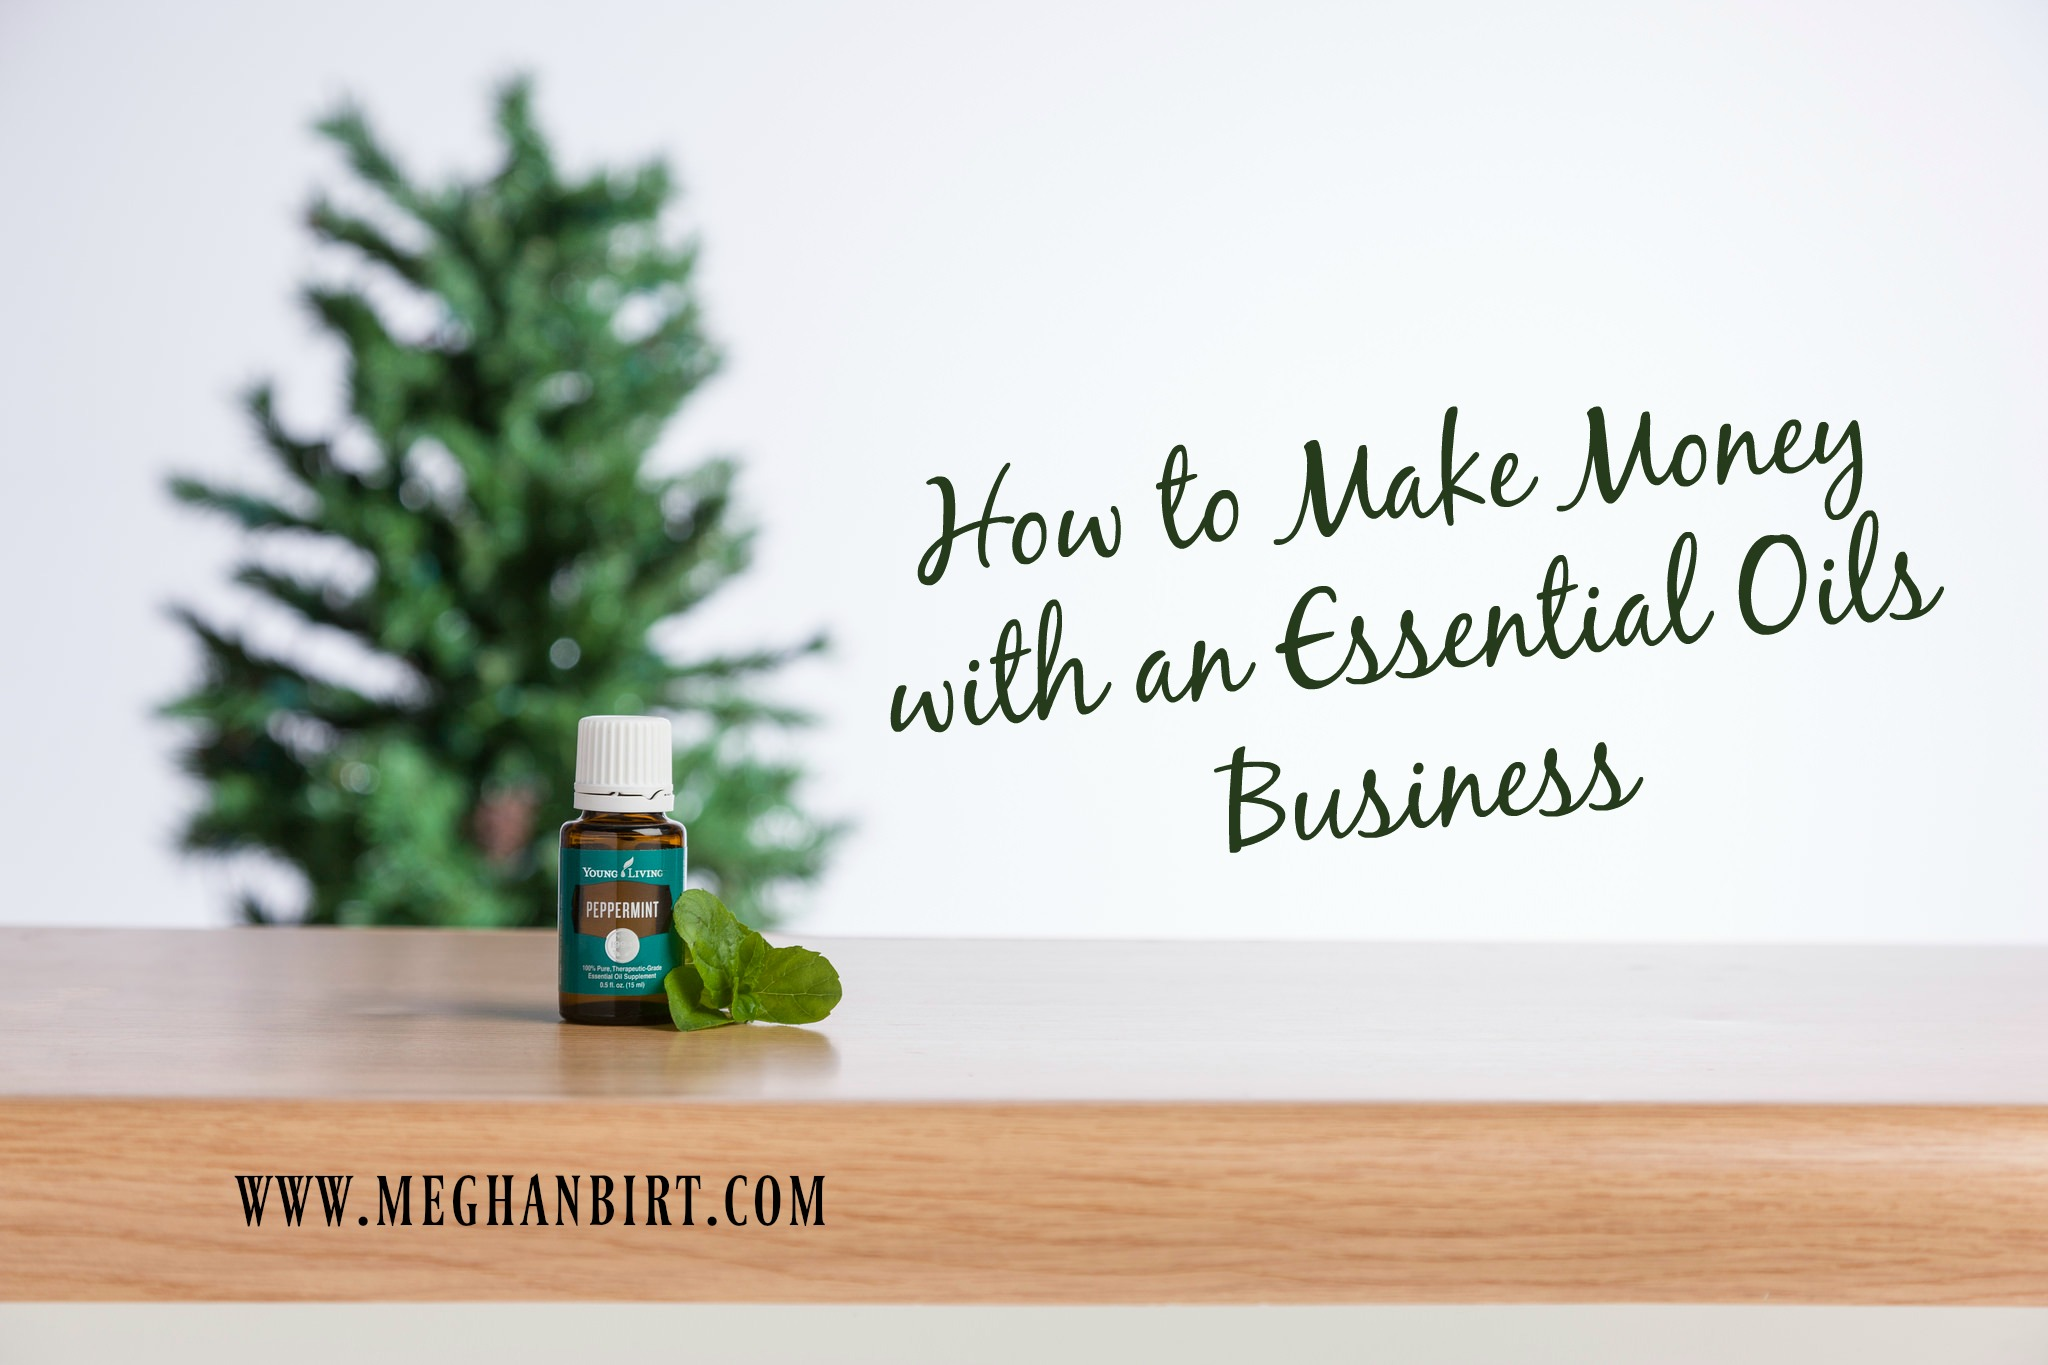 how-to-make-money-with-an-essential-oils-business-graphic